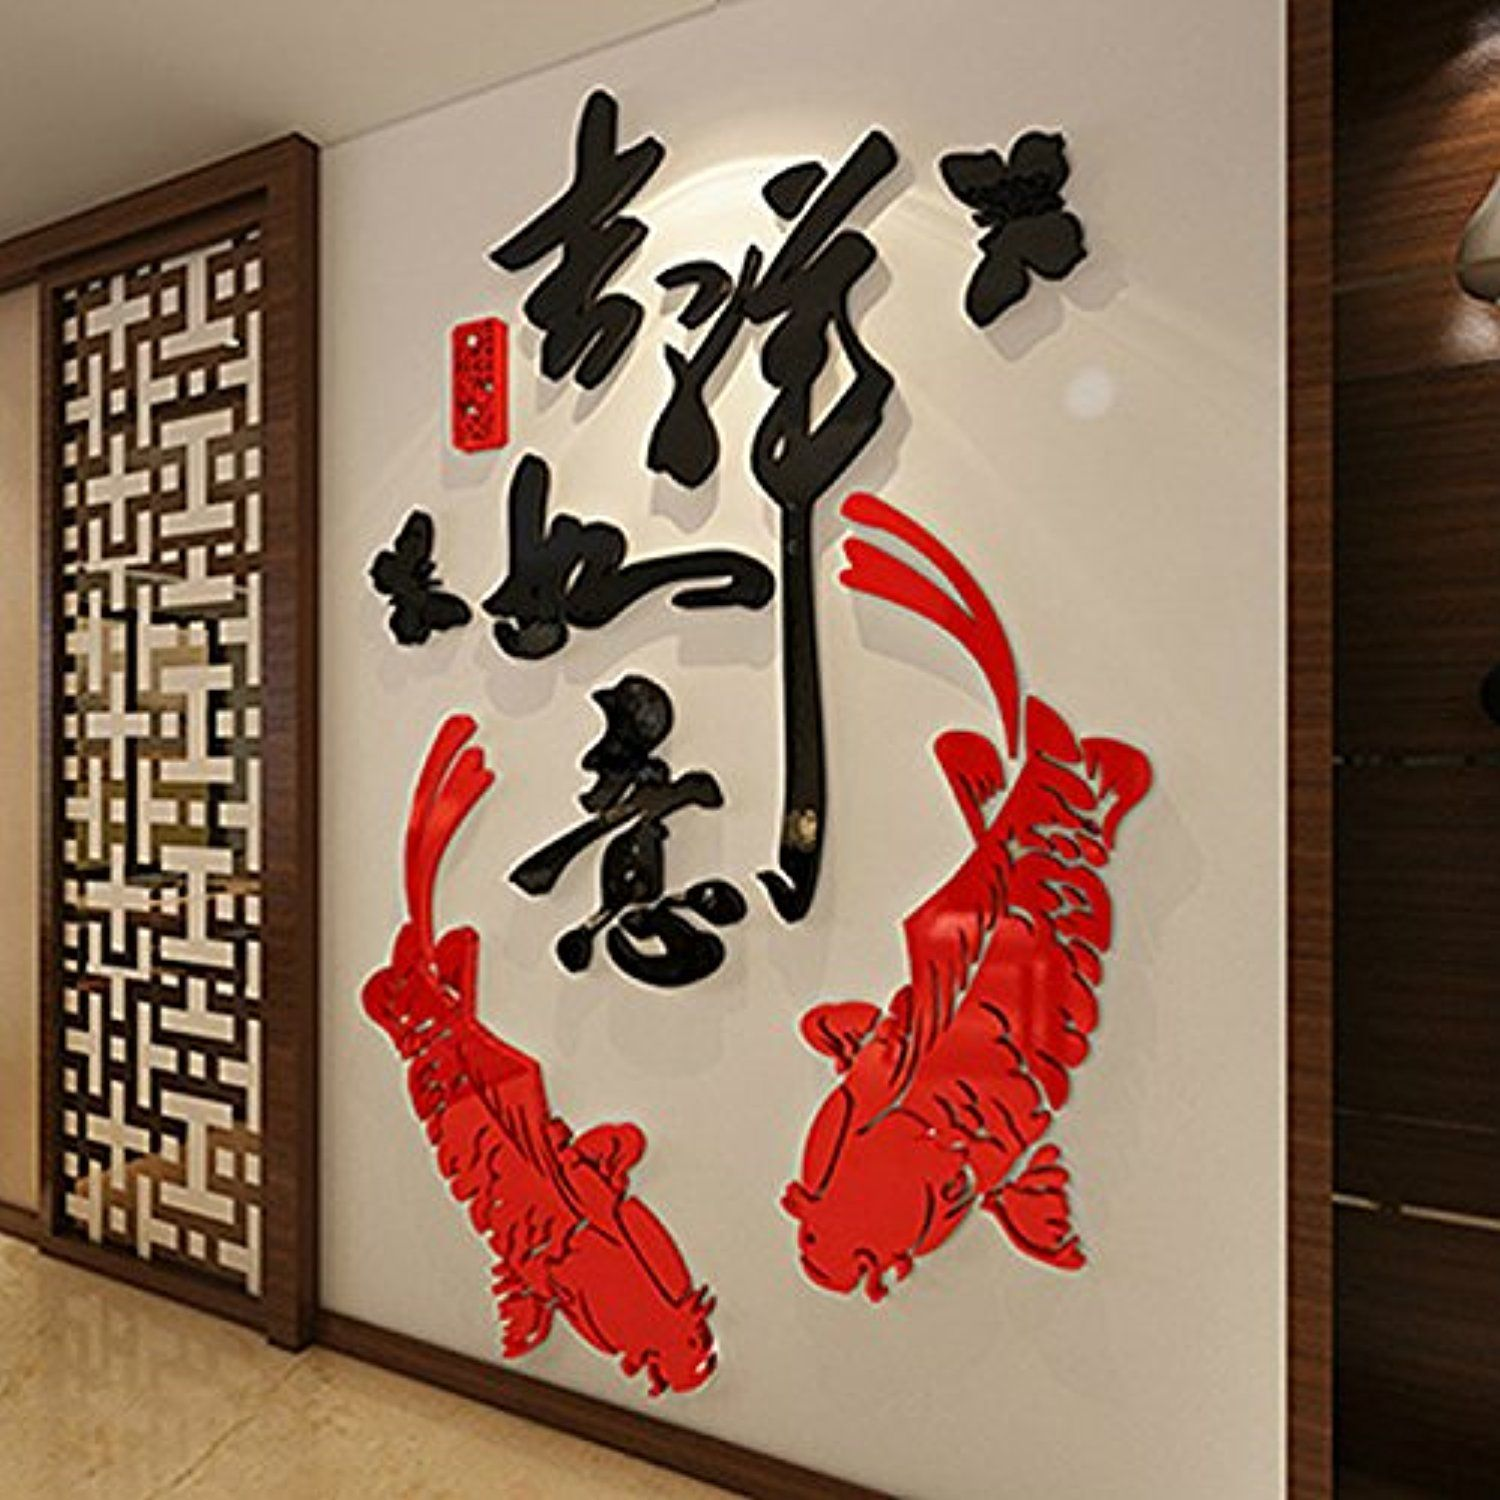 Alrenstmchinese lucky quotations sayings fish patterns